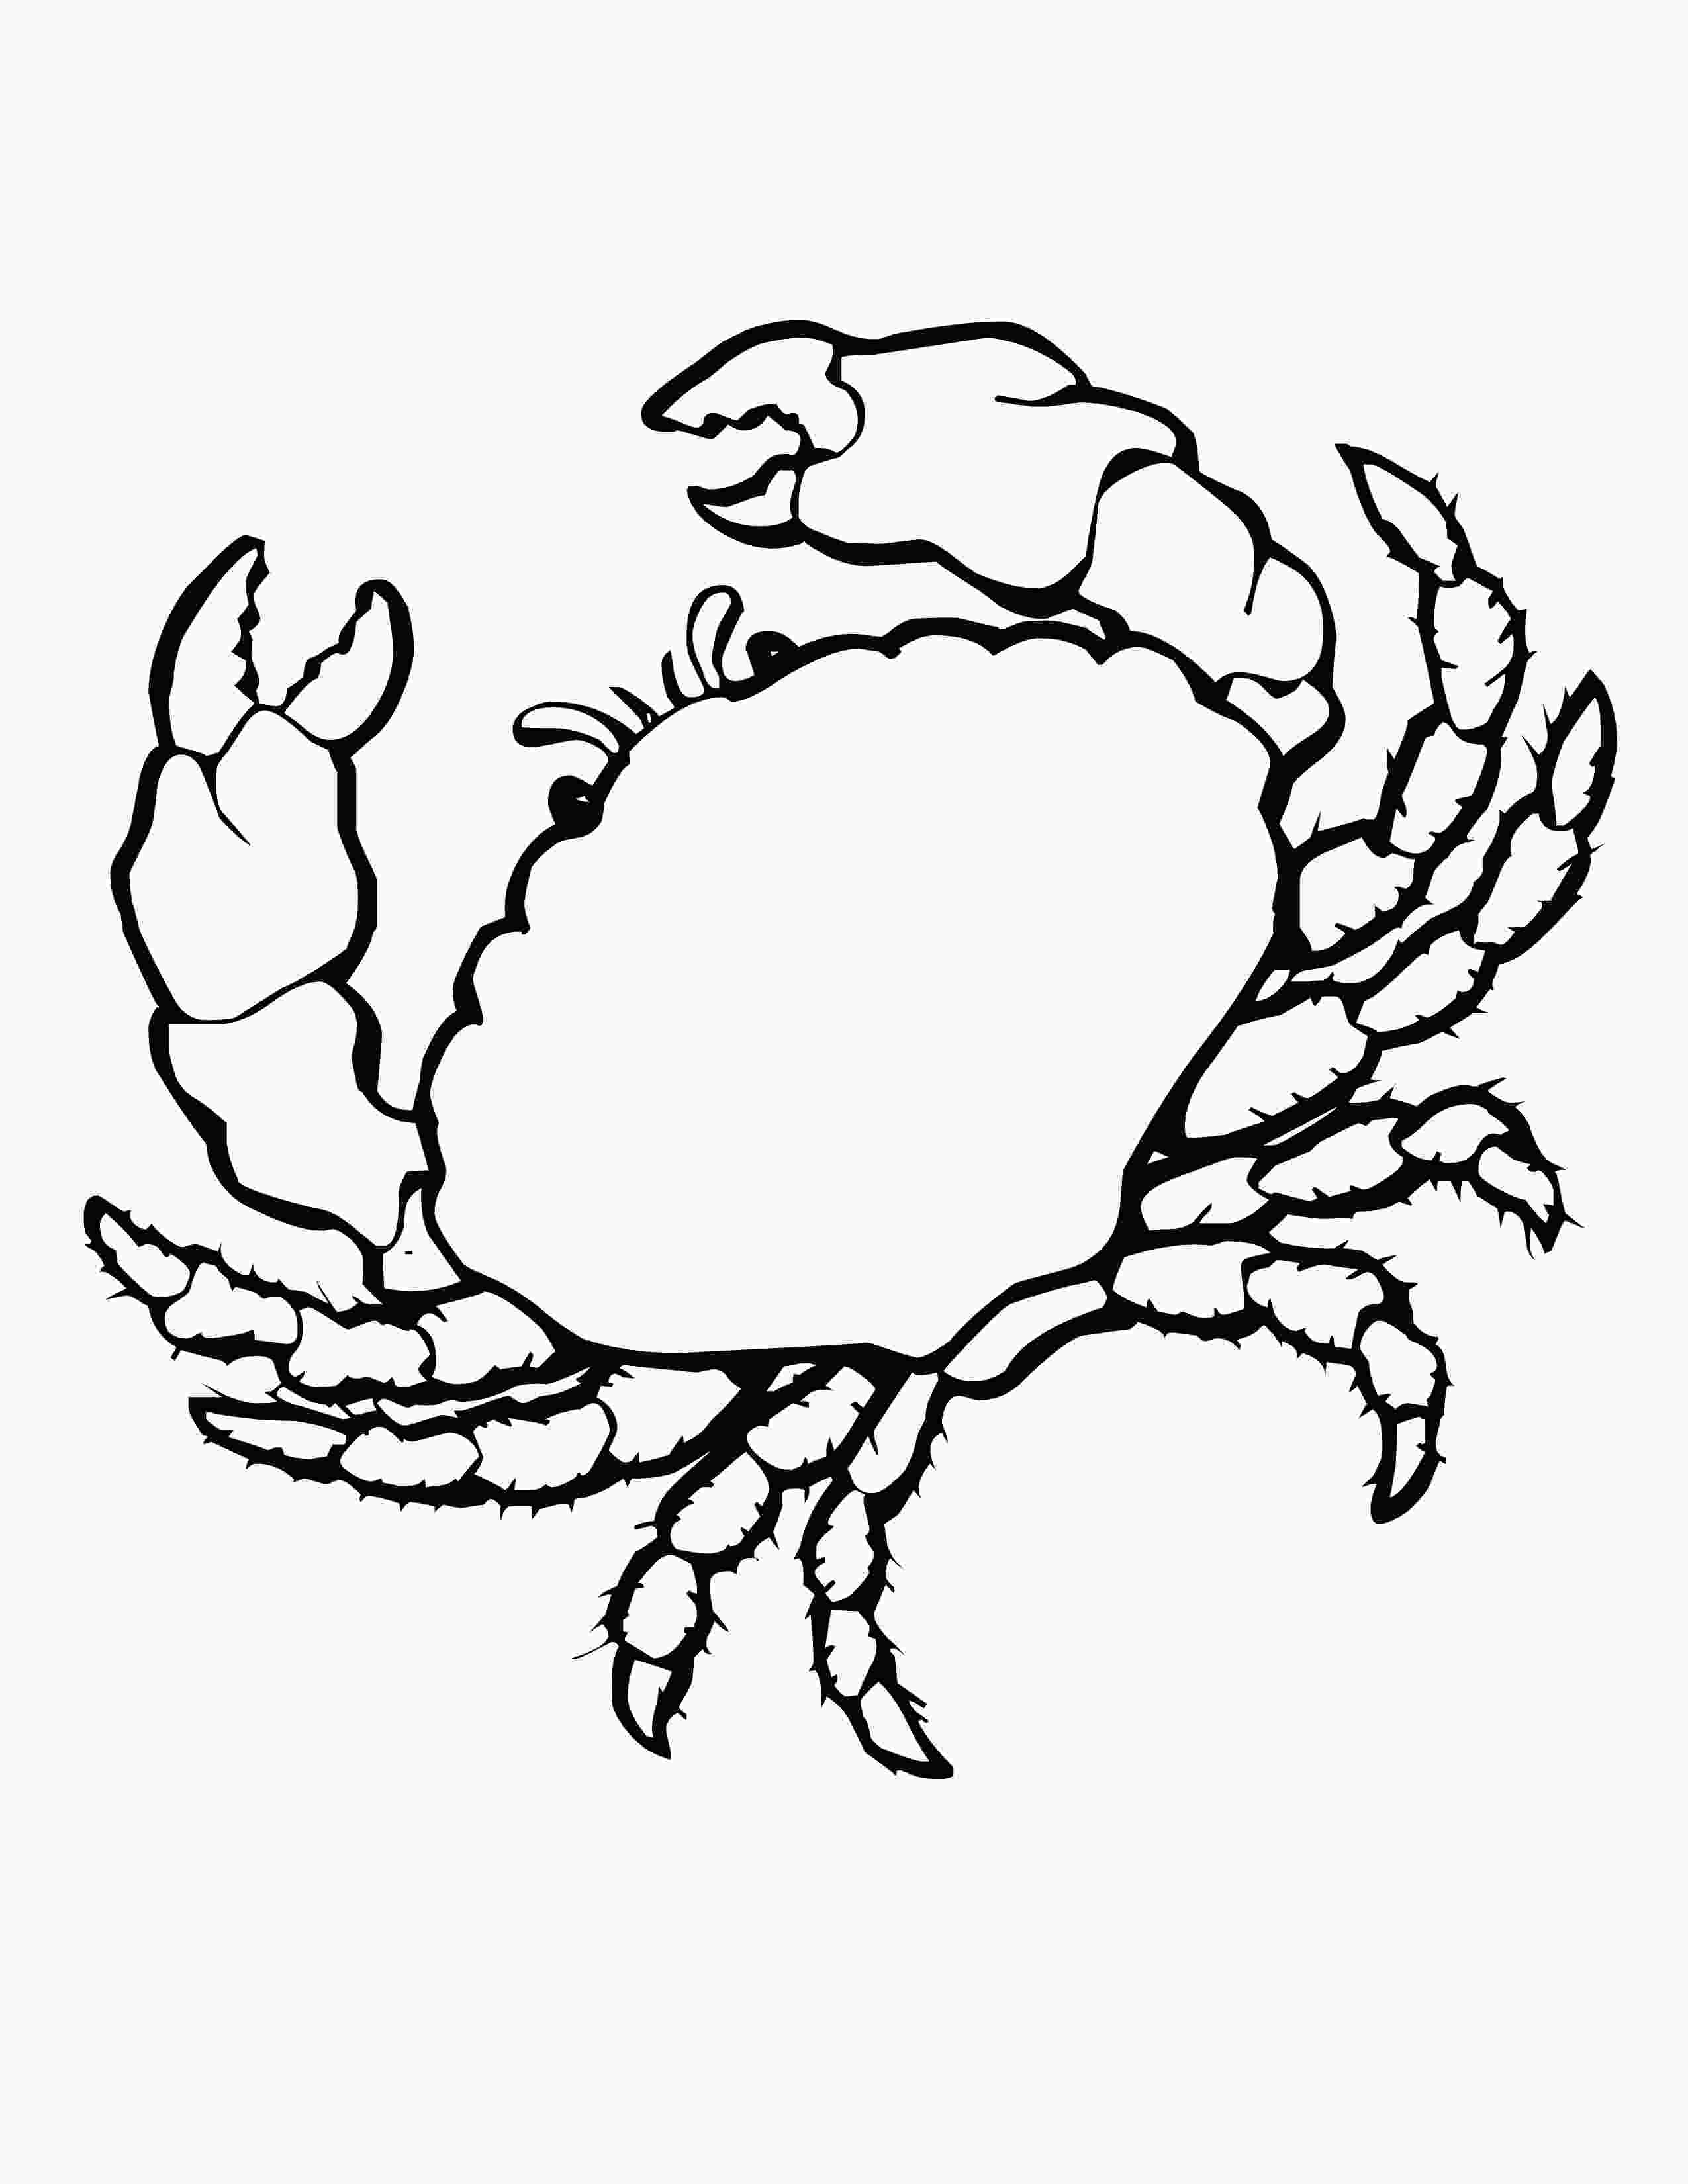 crab coloring pages free printable crab coloring pages for kids animal place